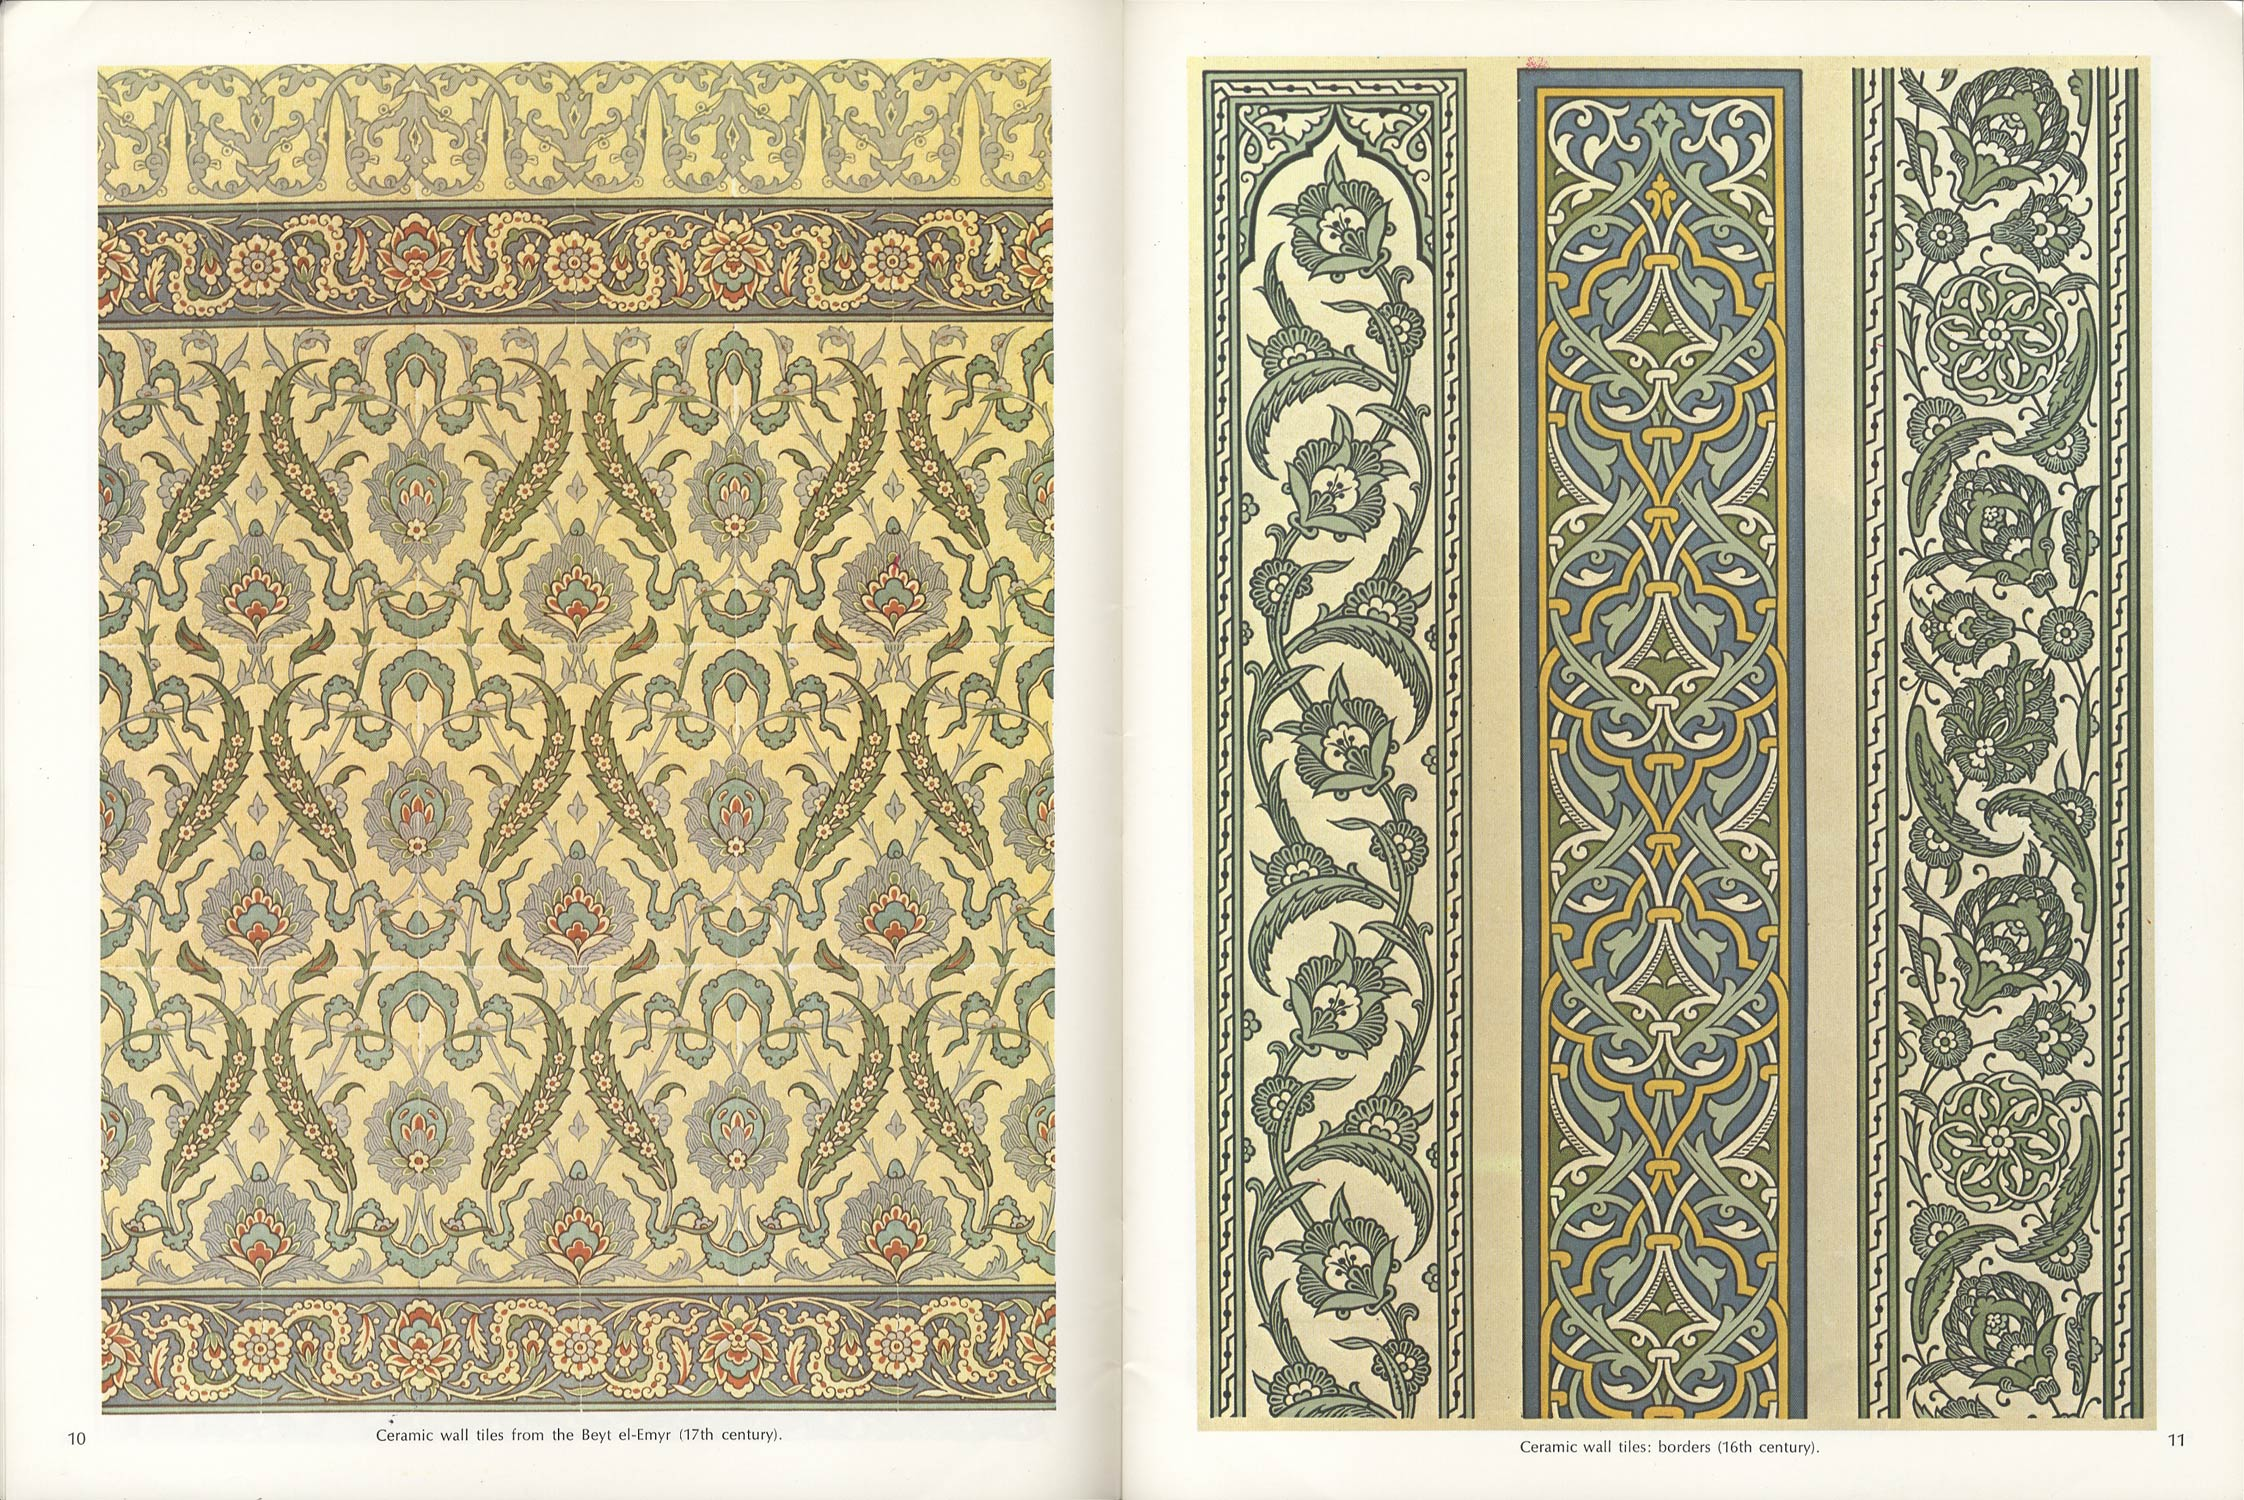 Arabic Art in Color  141 Designs and Motifs on 50 Plates[image2]